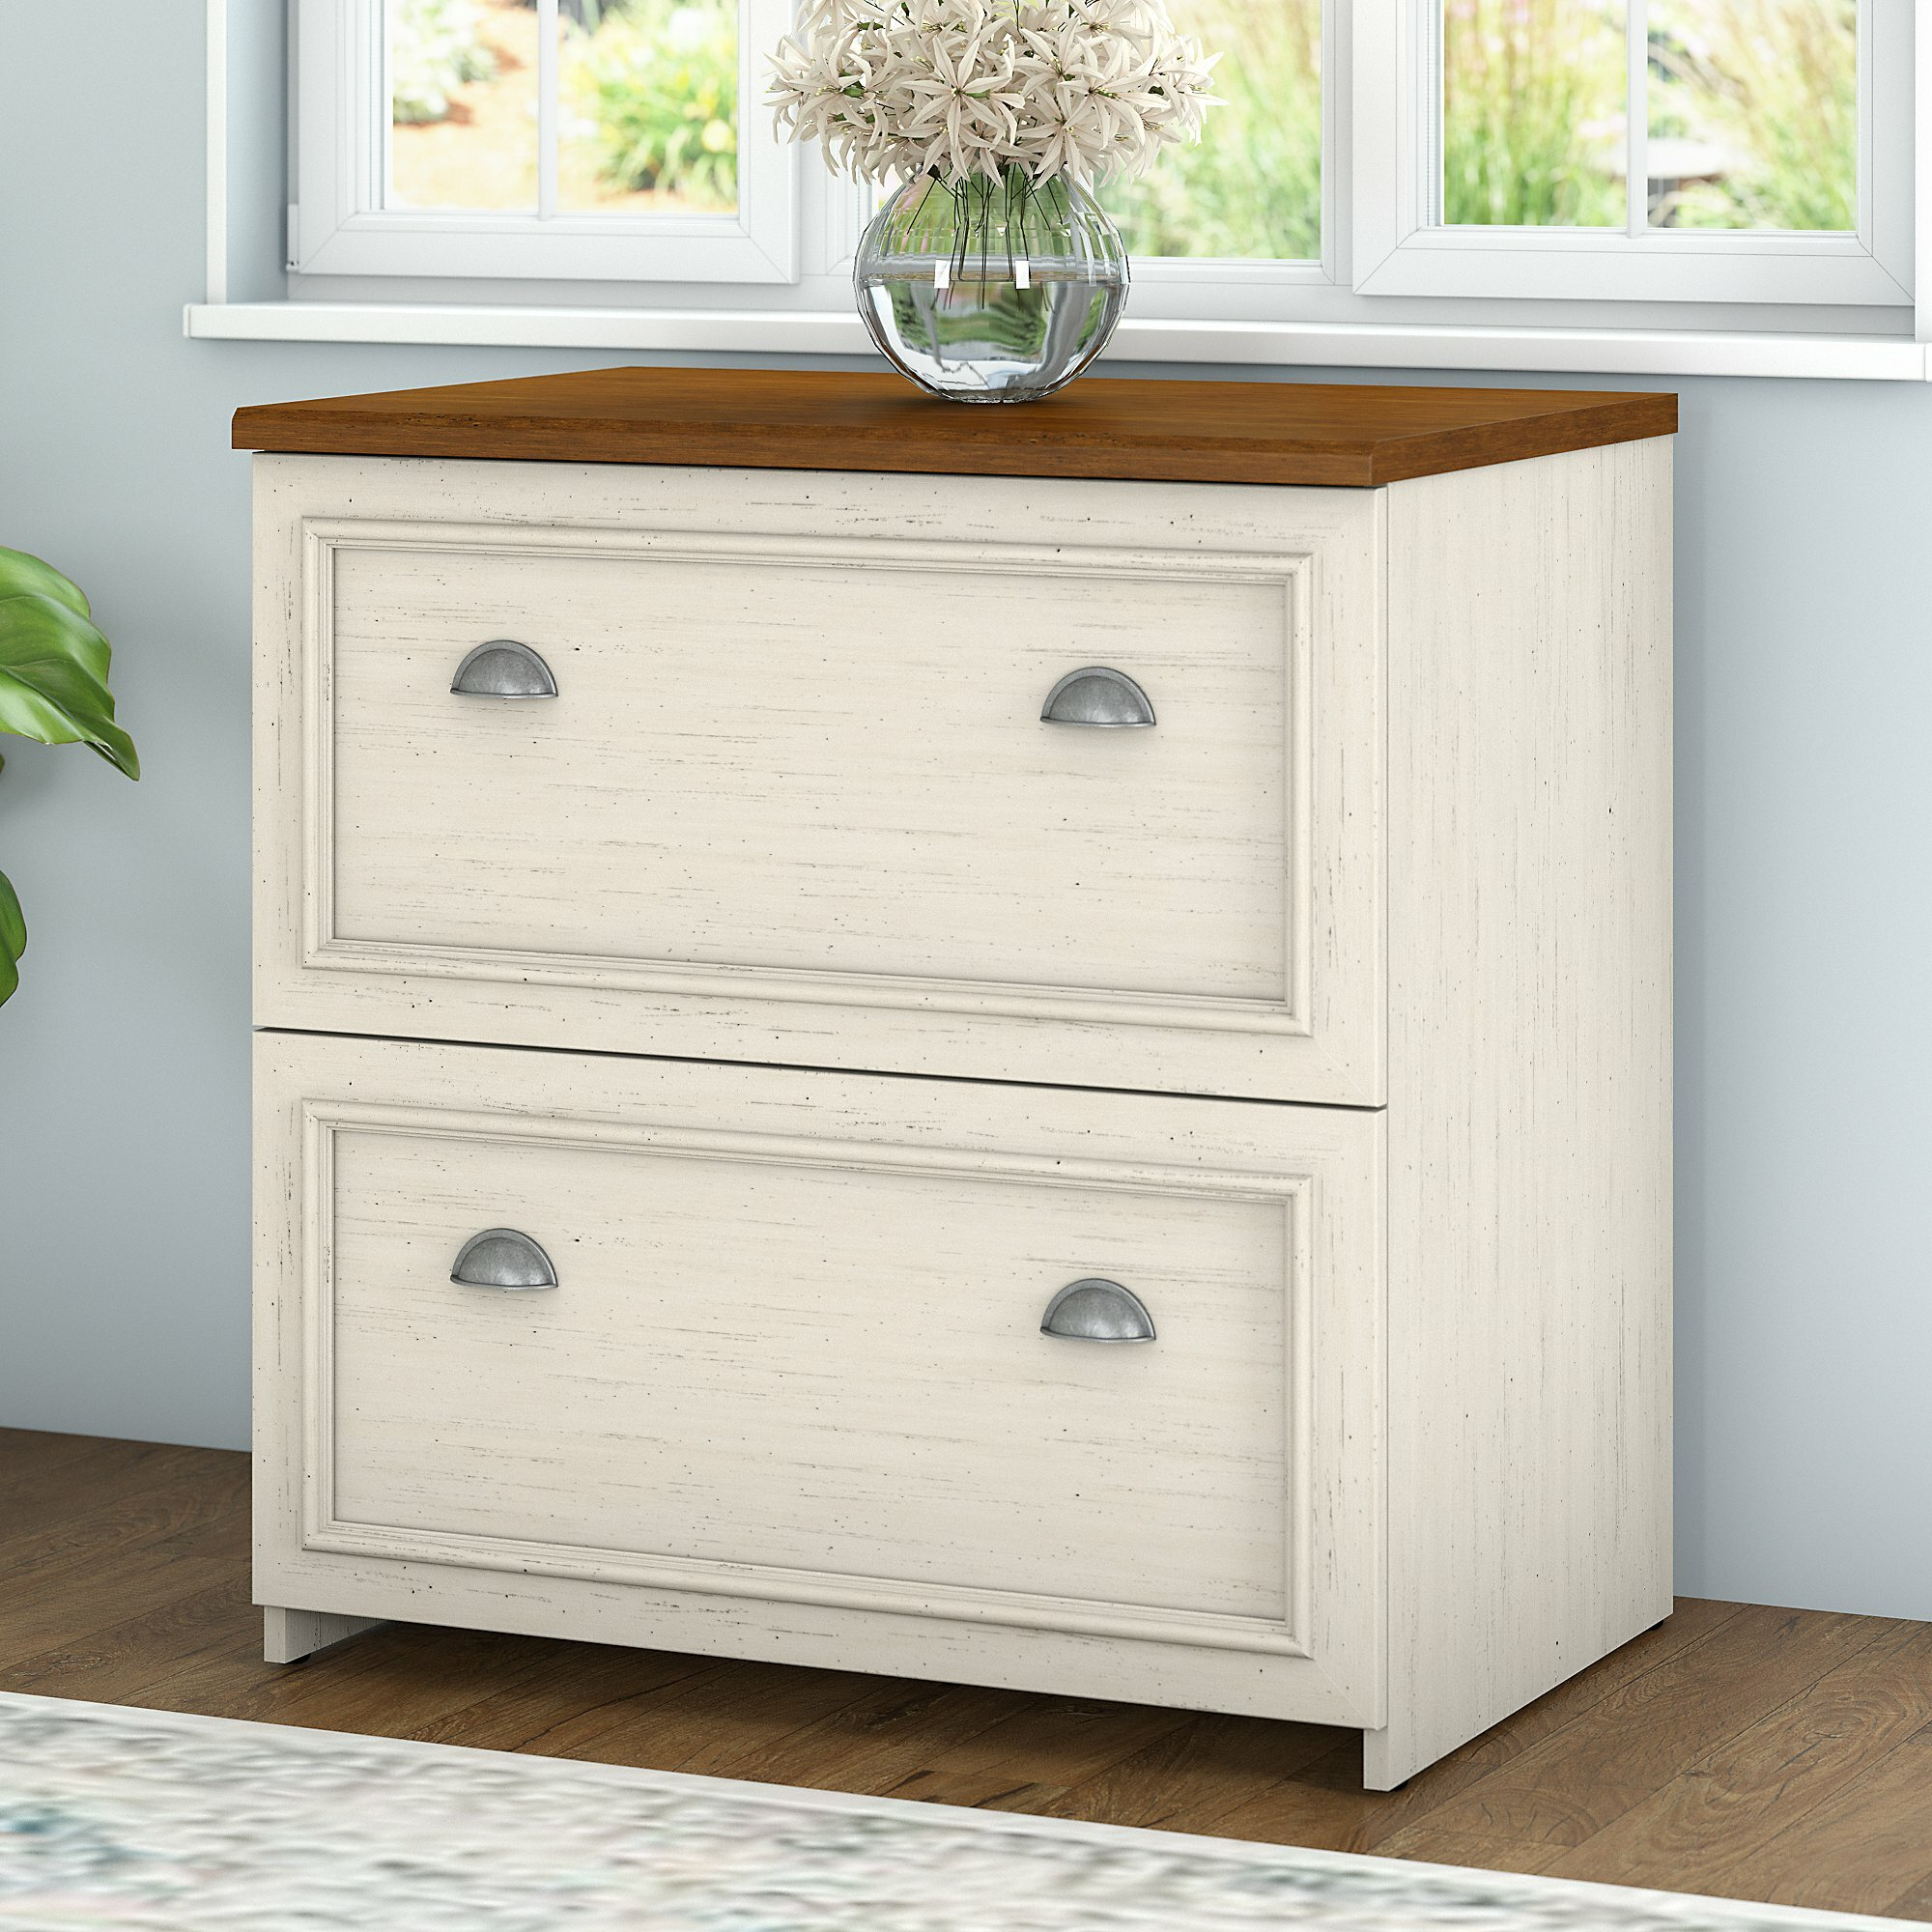 Niles 2 Drawer Lateral Filing Cabinet